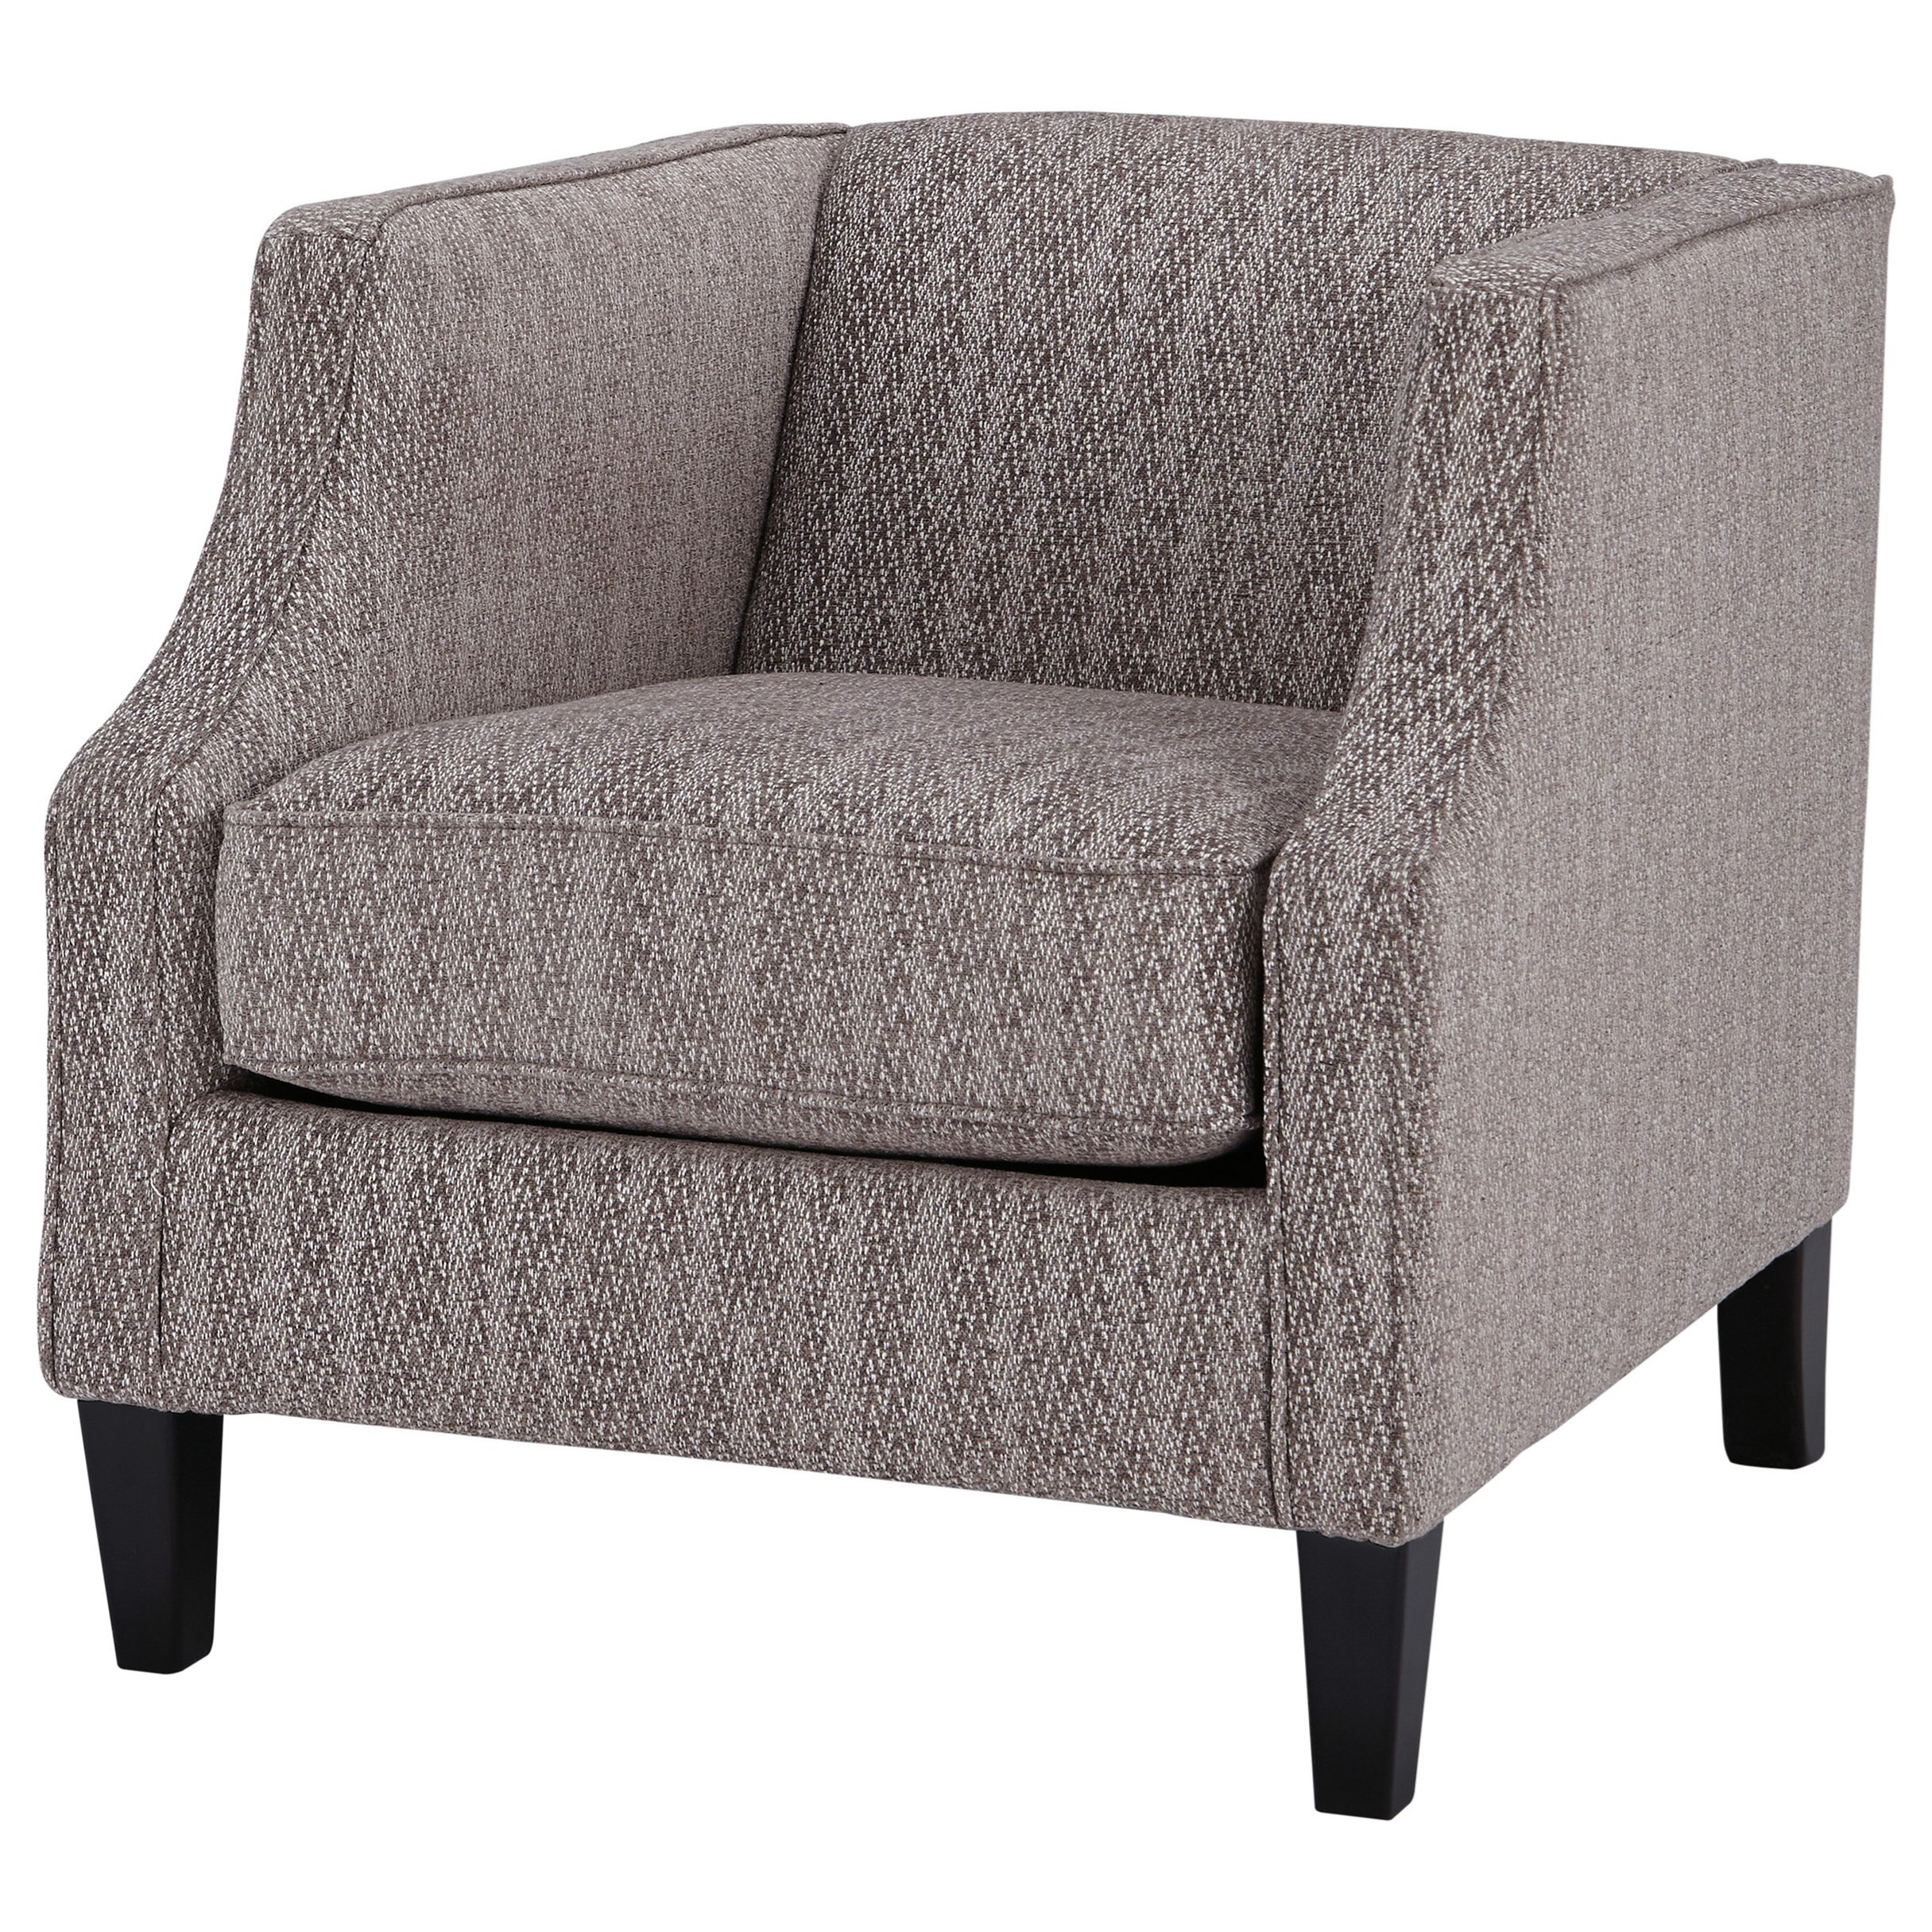 Signature Design by Ashley Alsatin Accent Chair - Item Number: A3000058